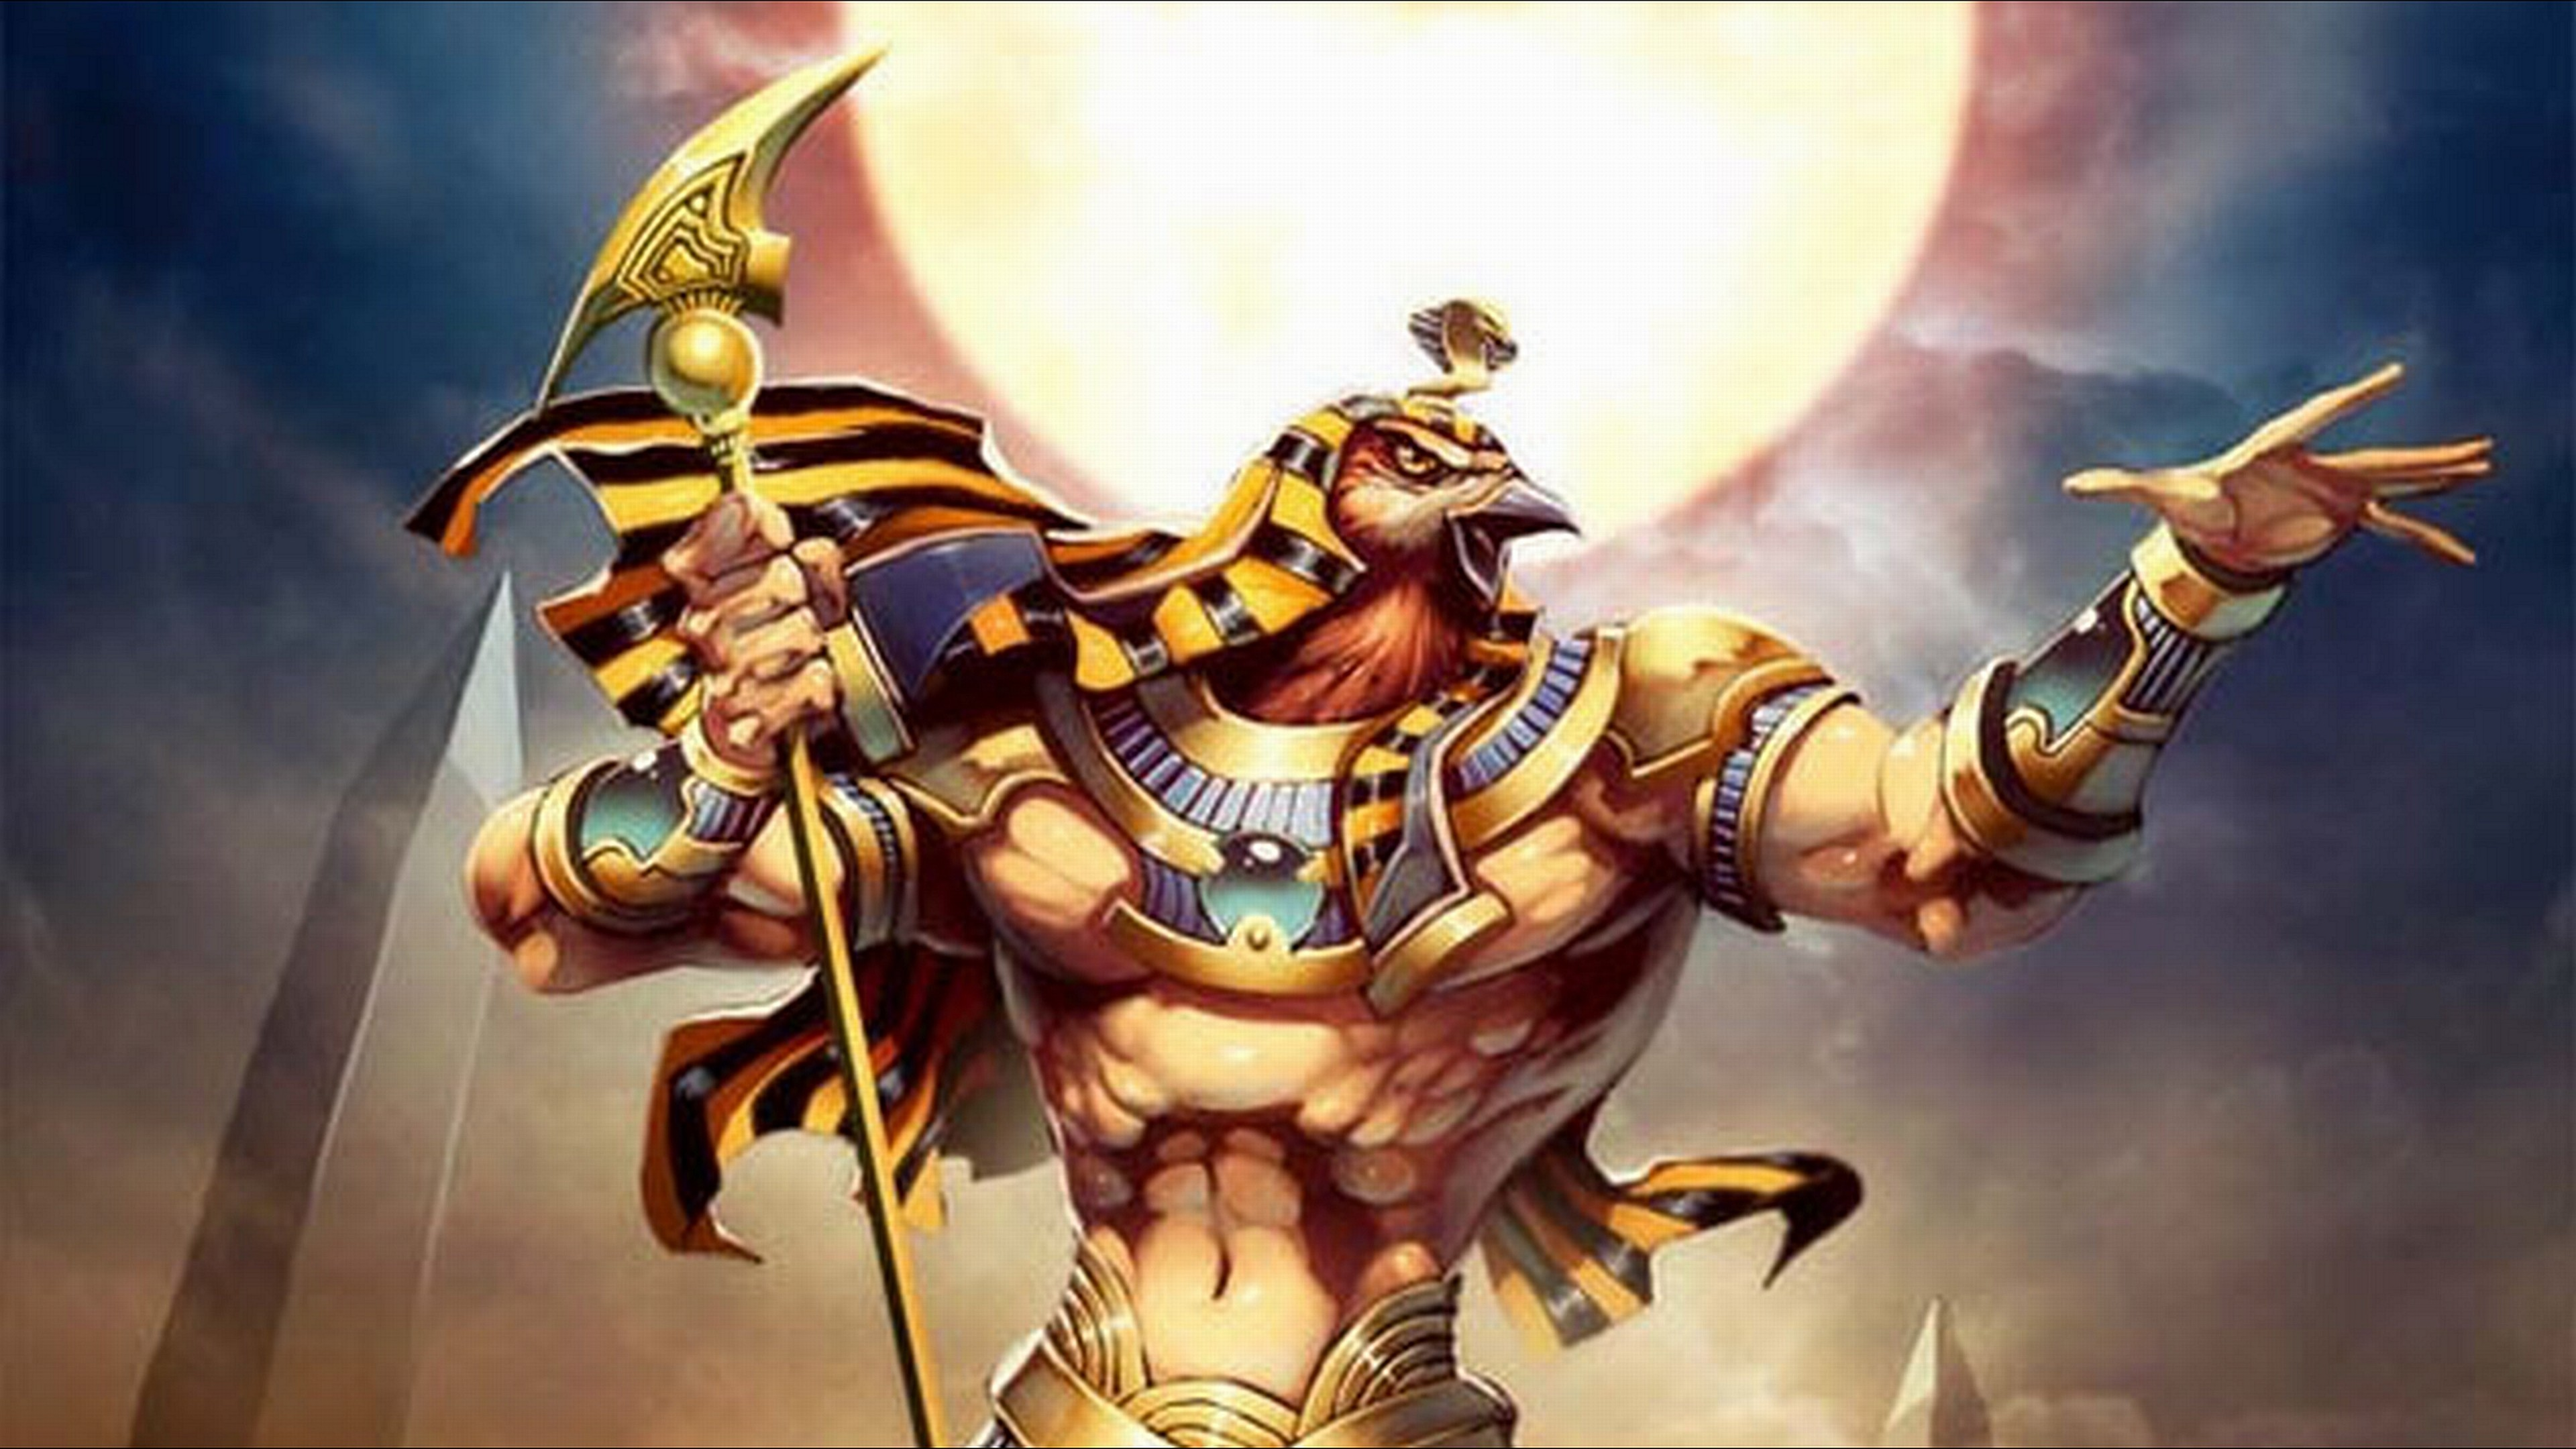 Egyptian Gods Wallpaper Backgrounds (66+ images)